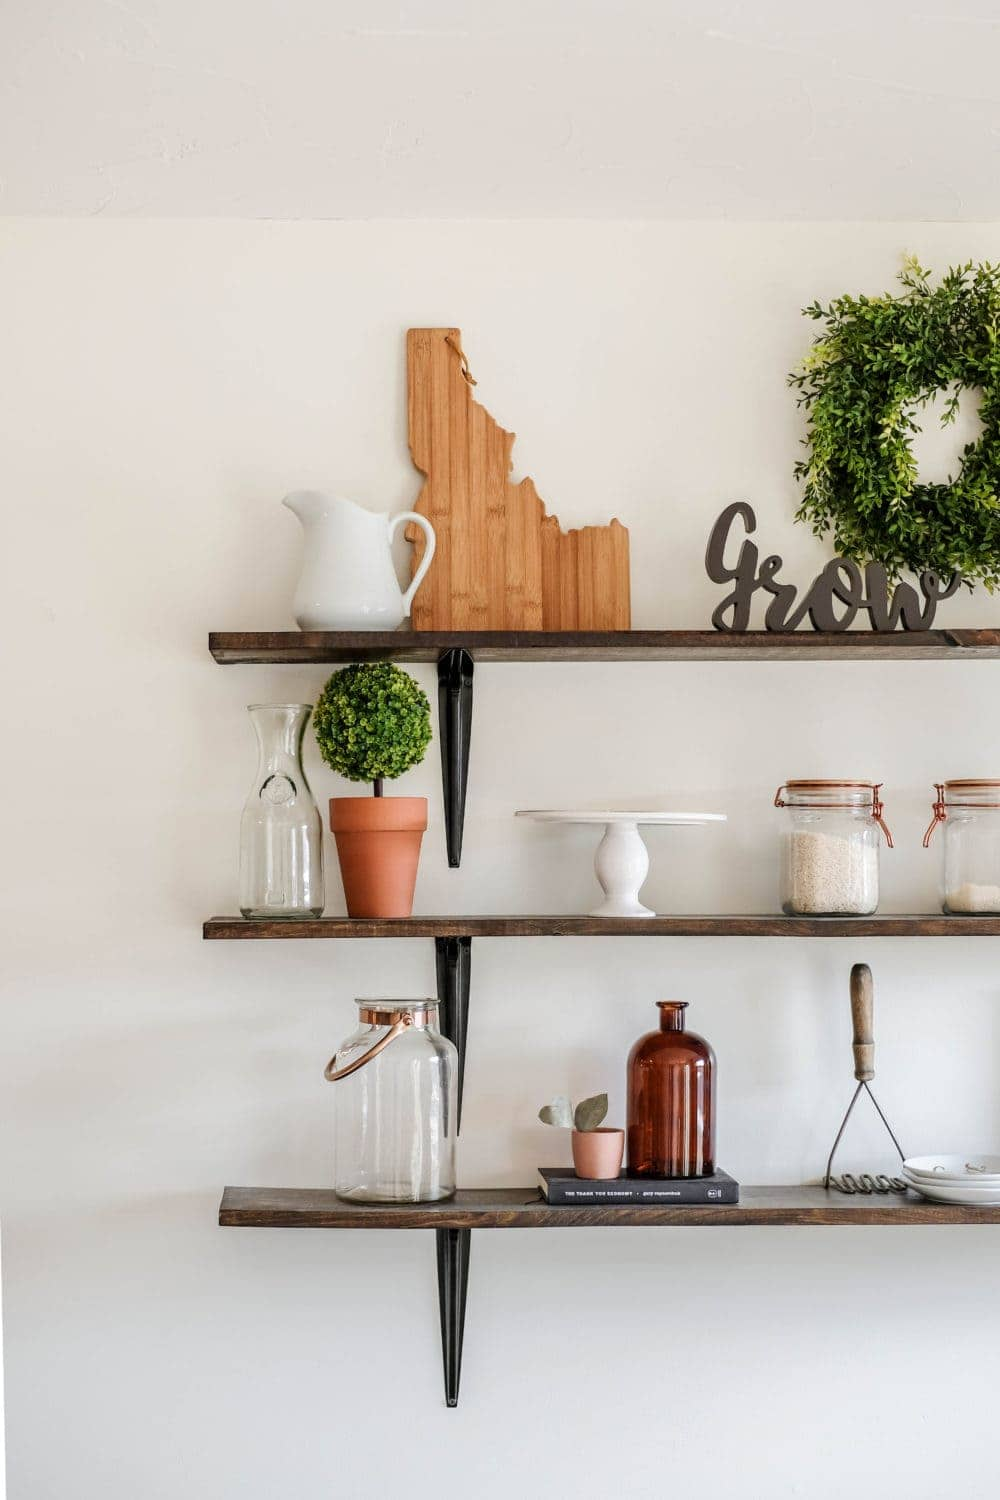 dining room shelves styled with a cutting board, a cake stand, potted greenery and glass canisters